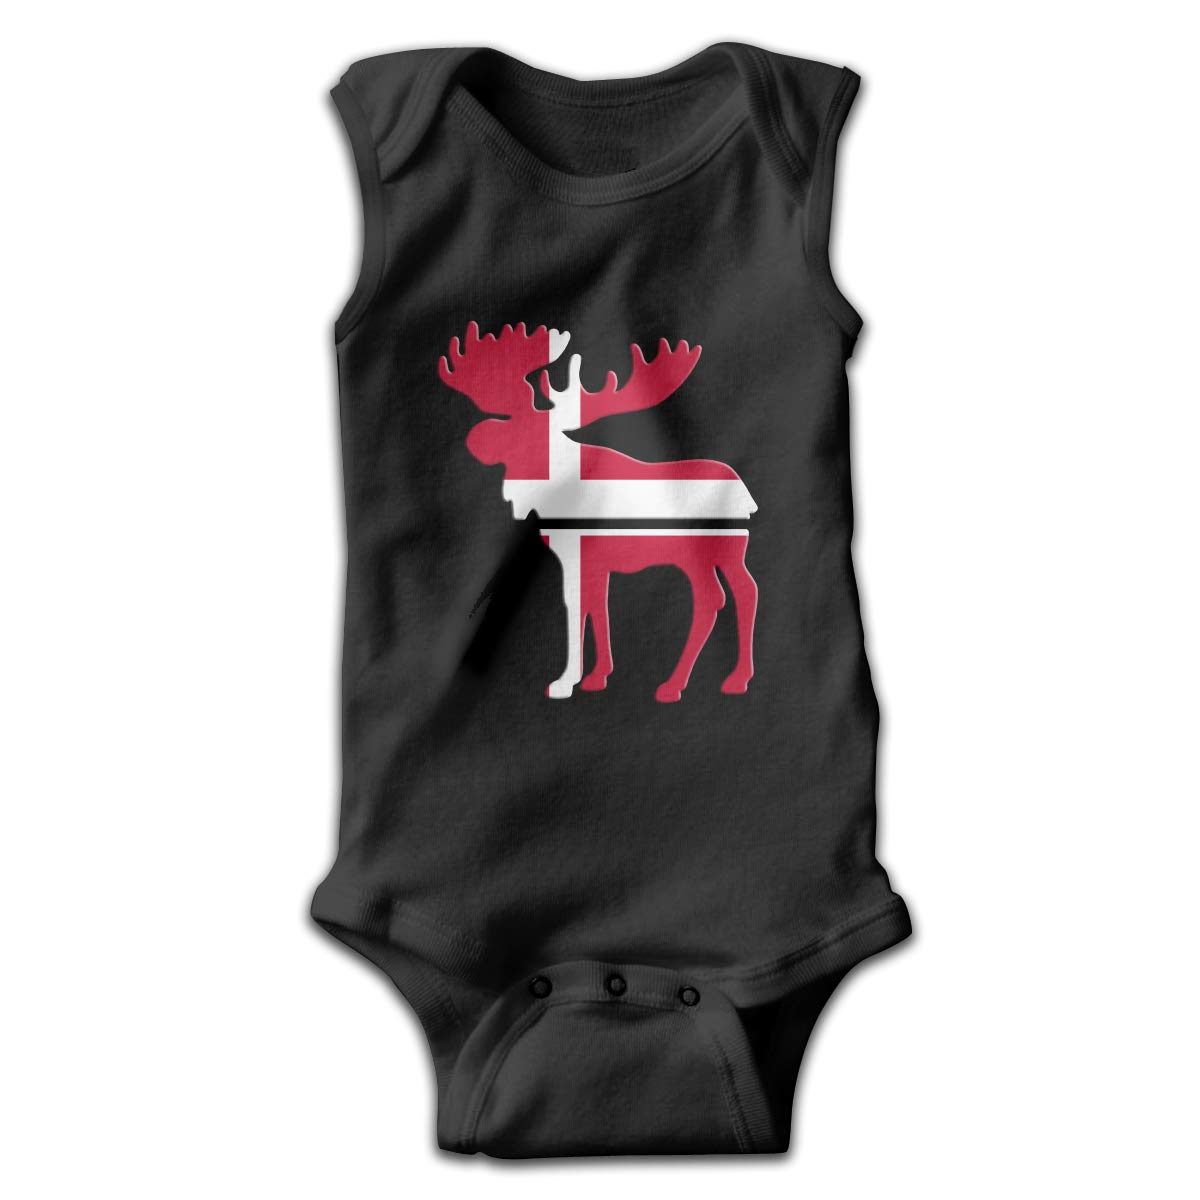 MMSSsJQ6 Moose Denmark Flag Infant Baby Boys Girls Crawling Clothes Sleeveless Romper Bodysuit Rompers Jumpsuit